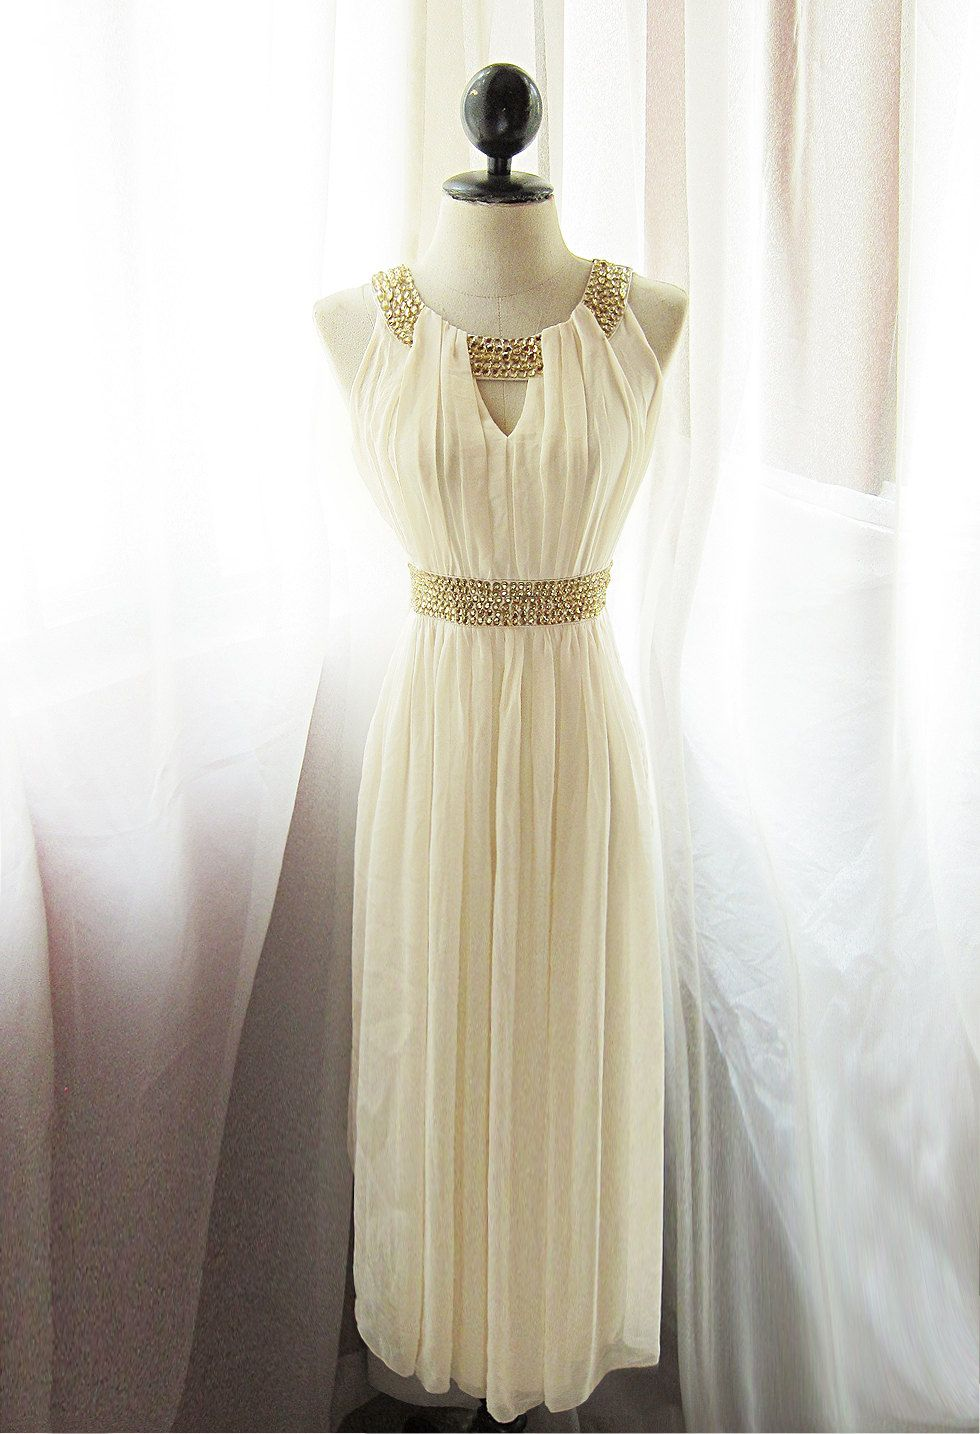 Egyptian Goddess Soft French Cream Chiffon Long by RiverOfRomansk, $188.50